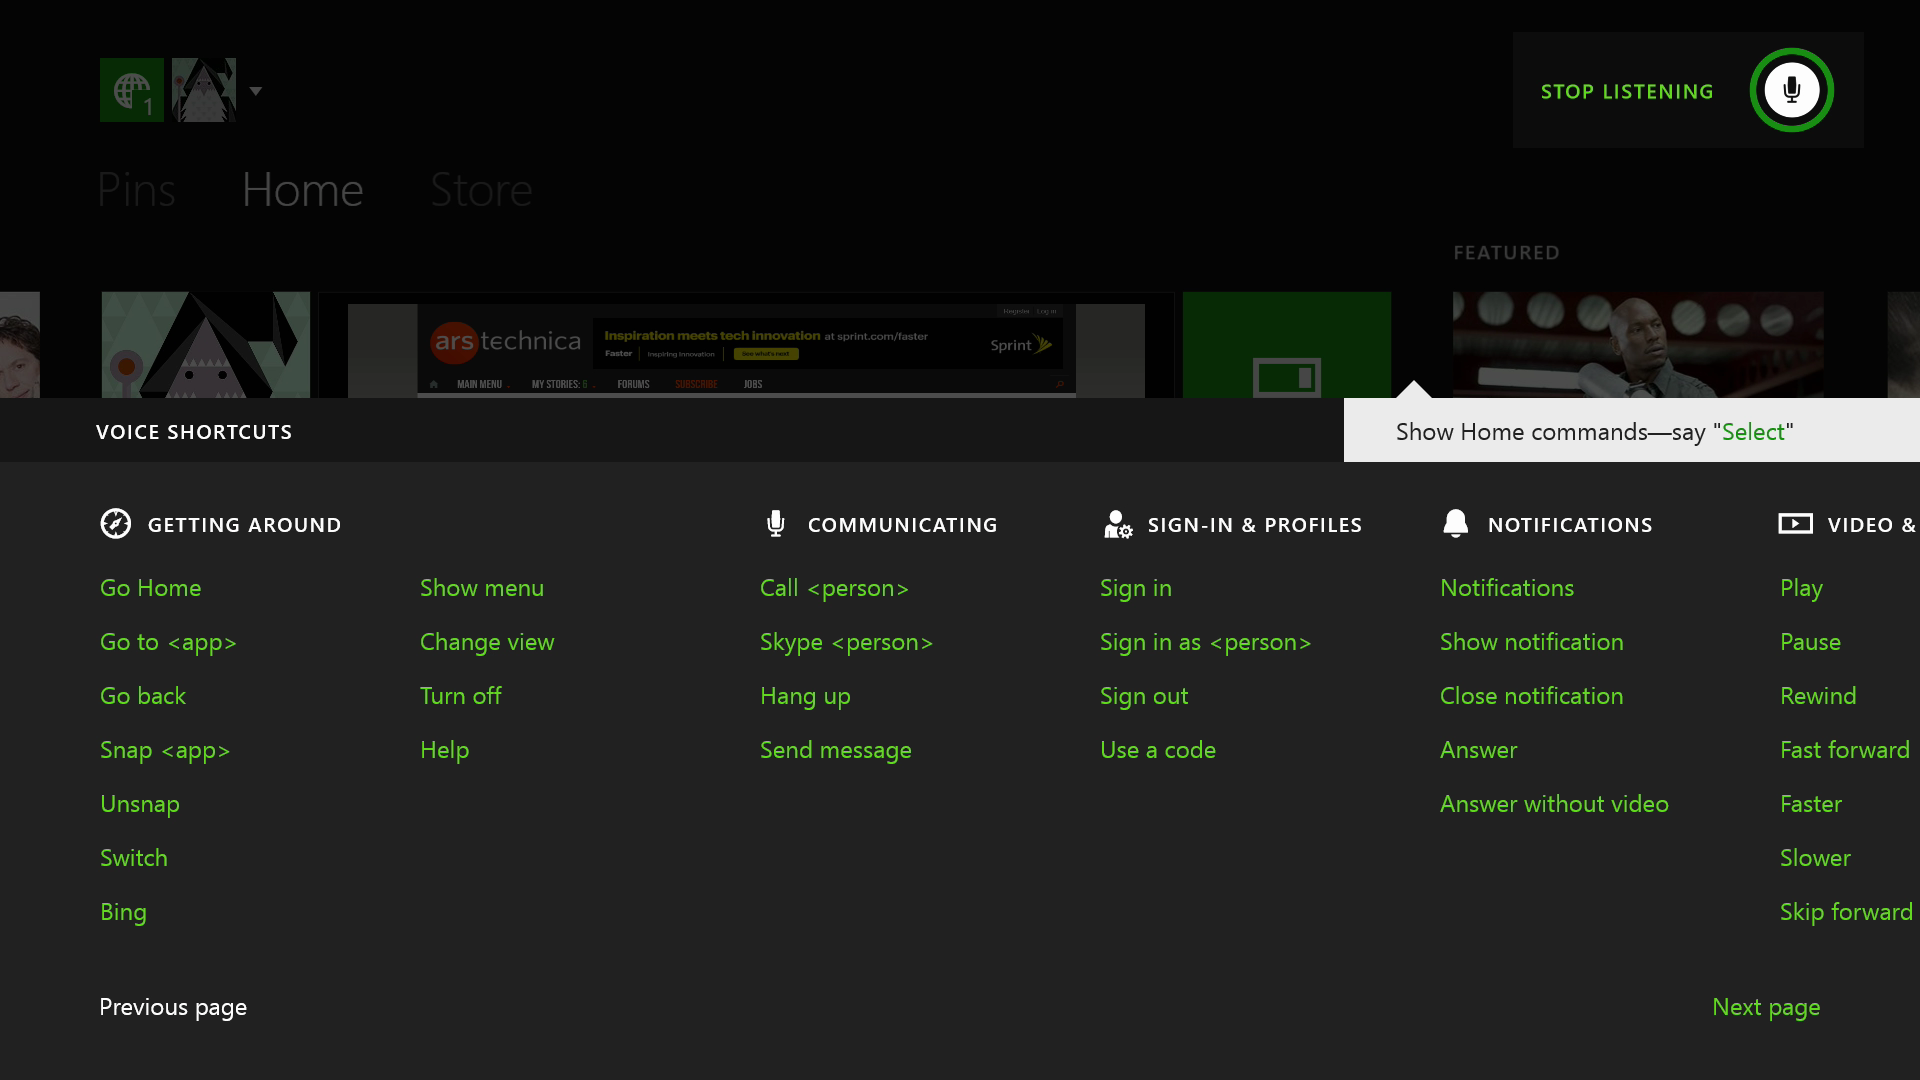 This list of voice commands spreads out over two screens, and it's not even complete.